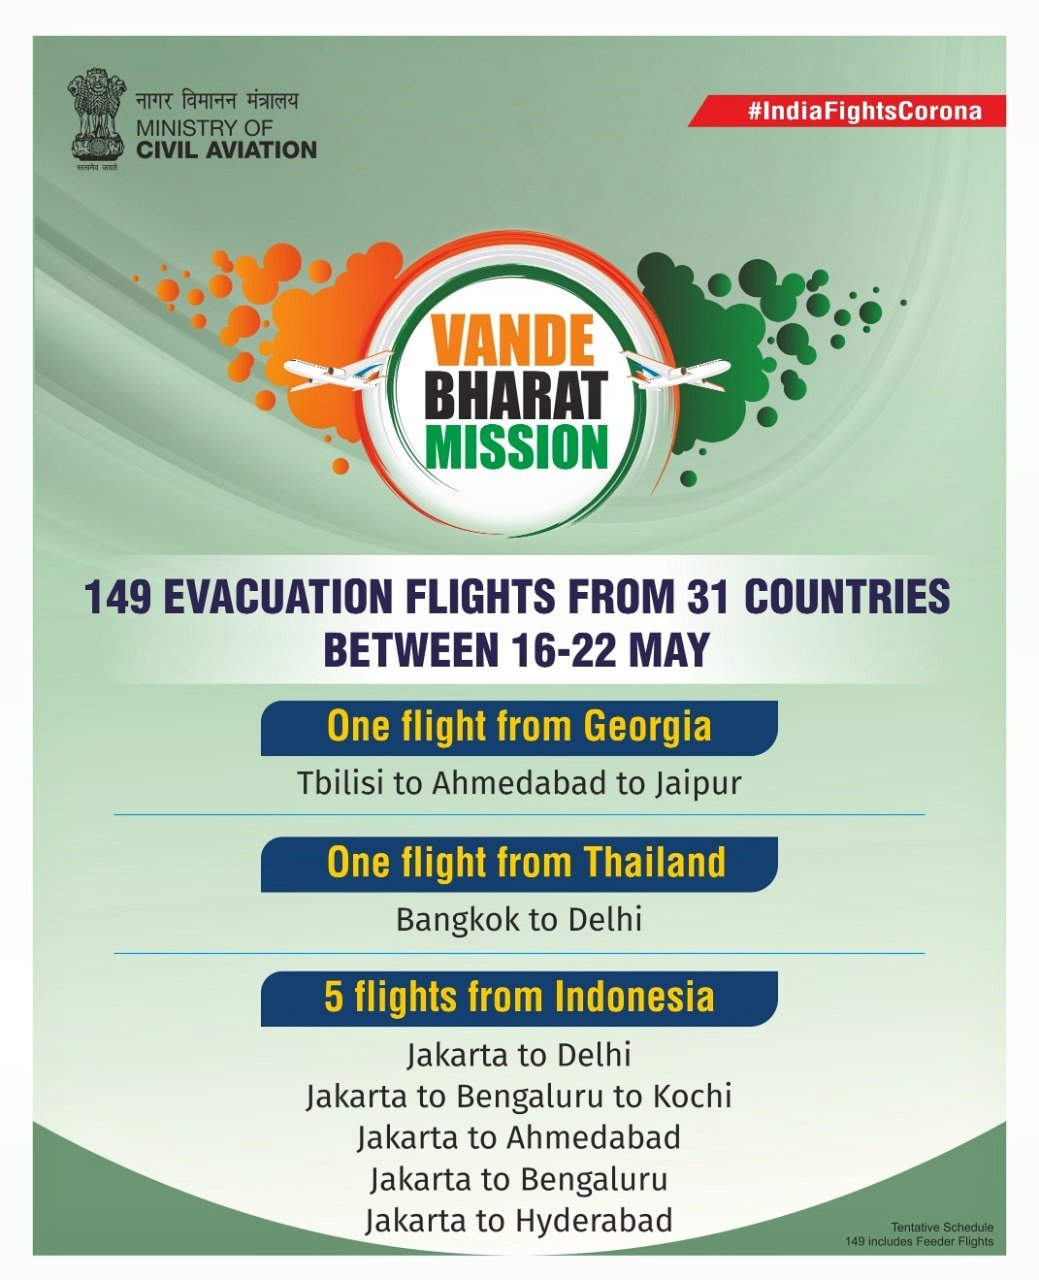 repatriation of Indians from Indonesia